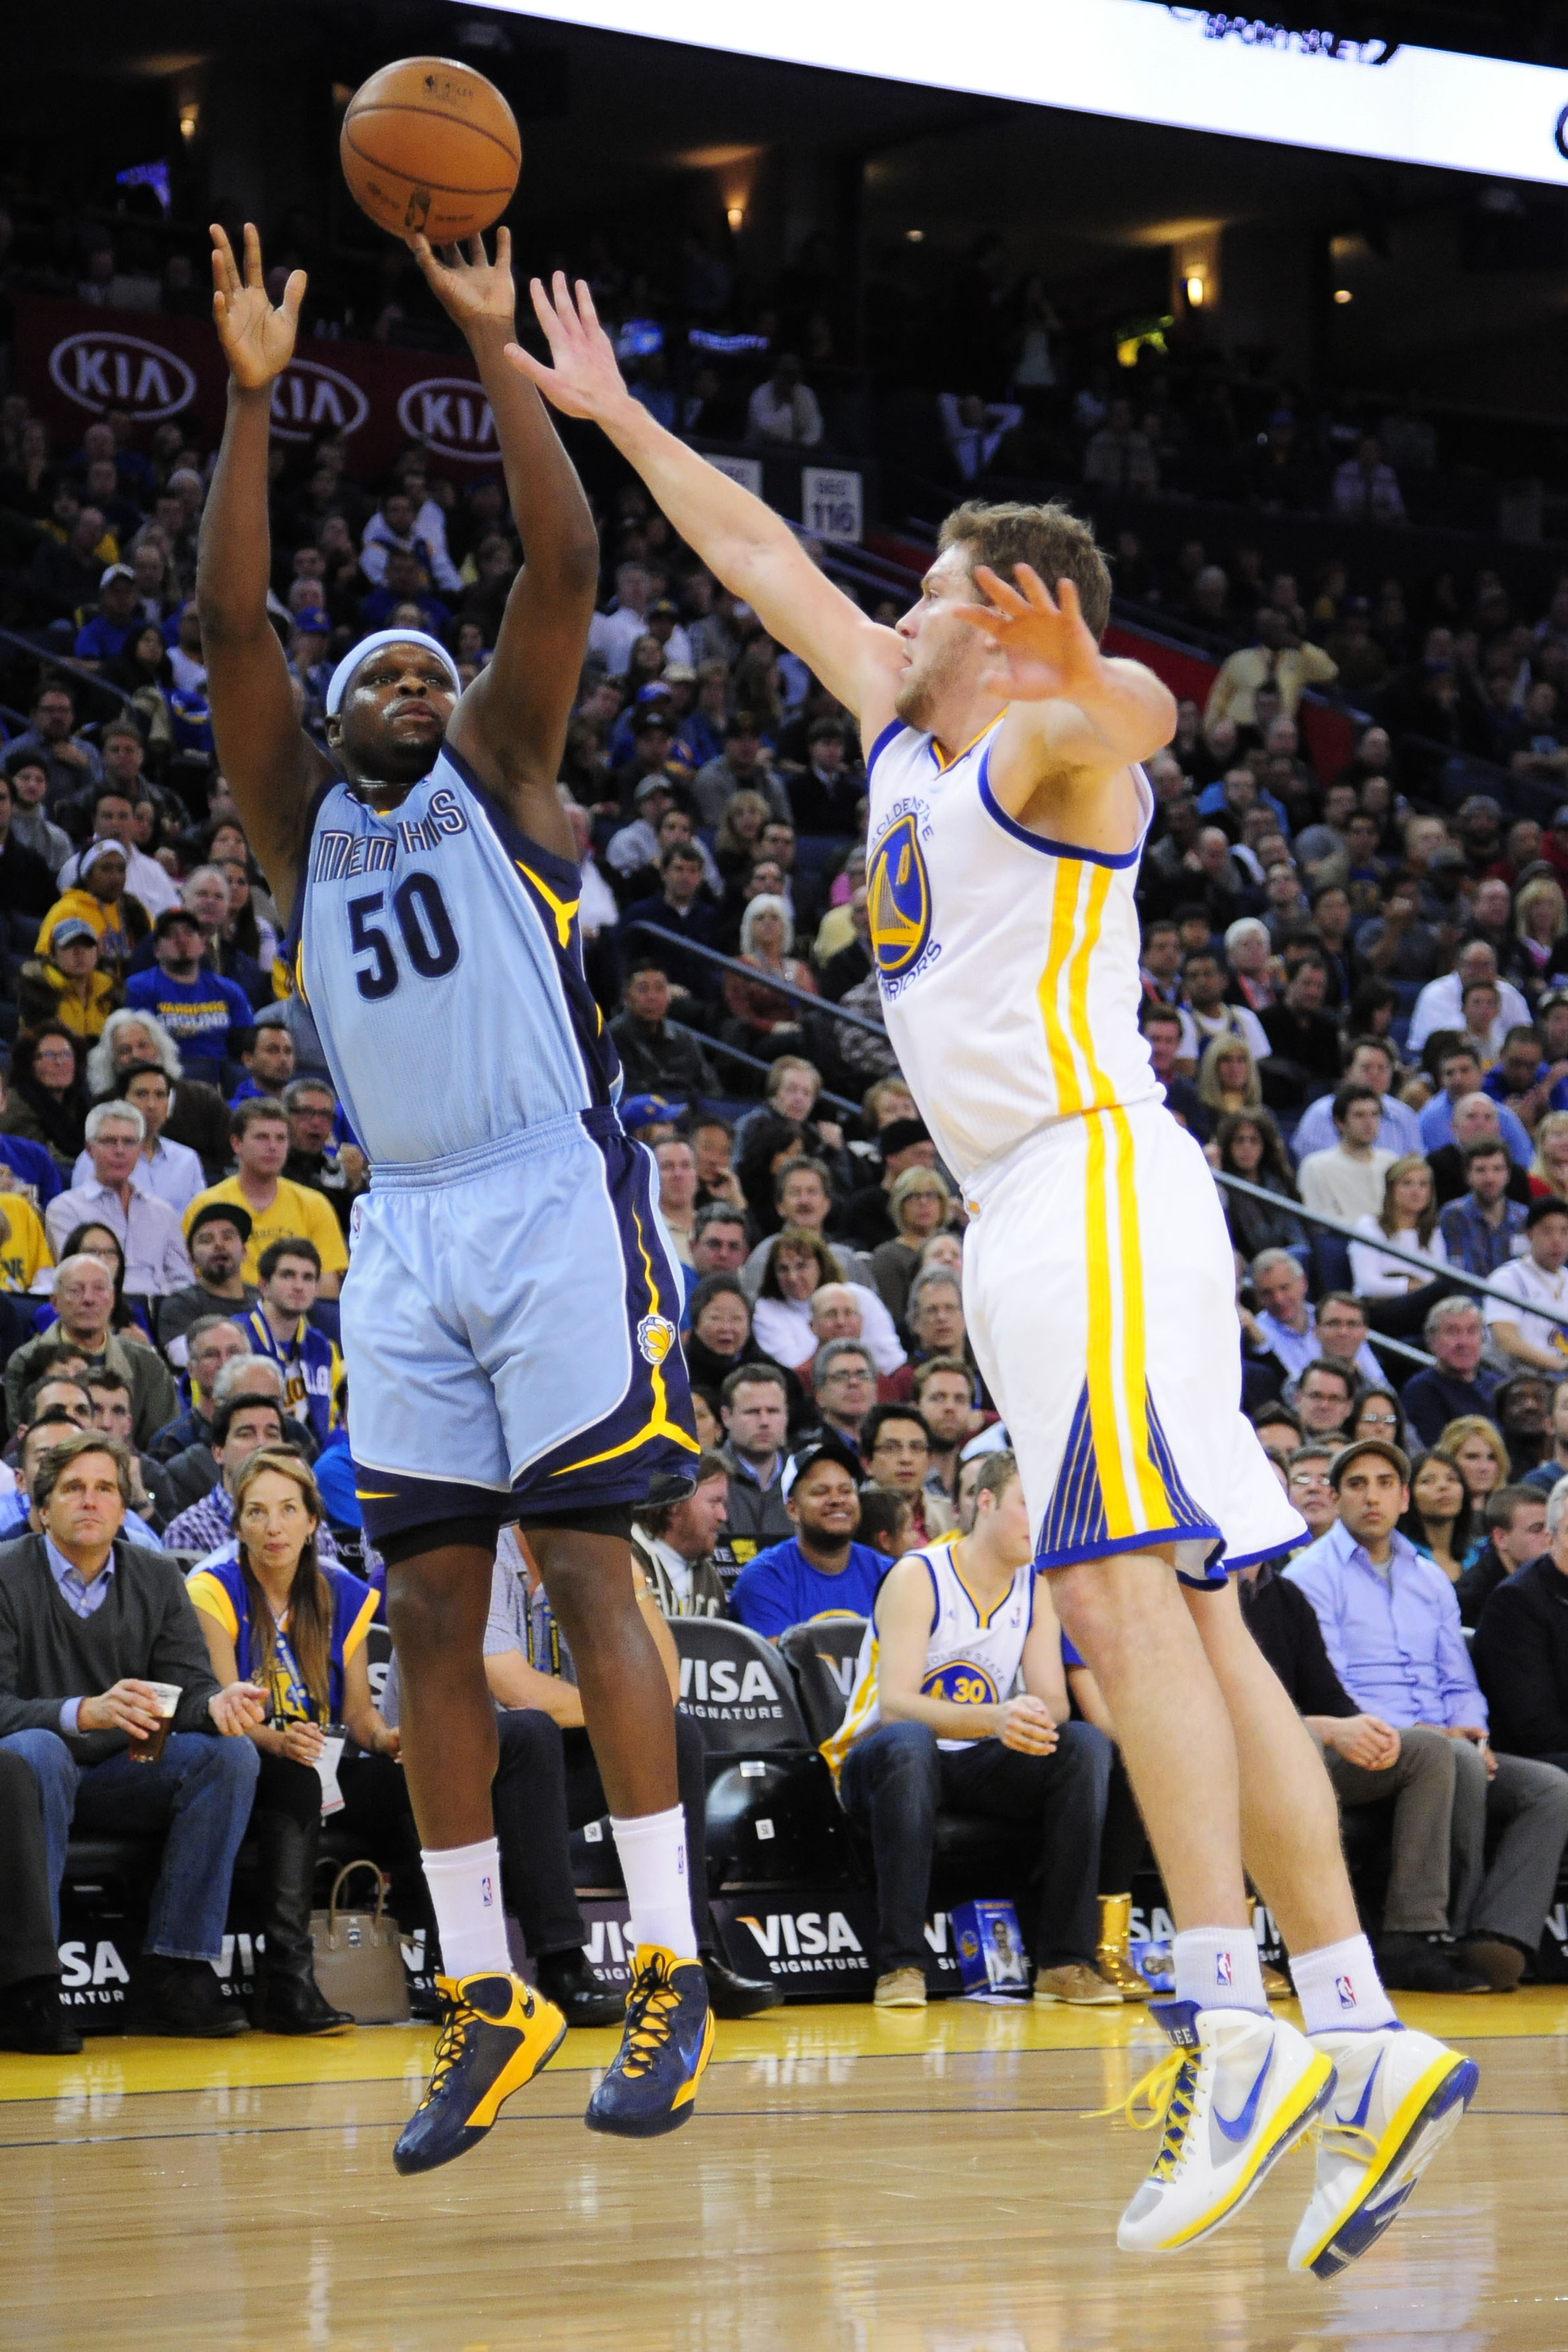 Apparently this is what David Lee sees in his nightmares.